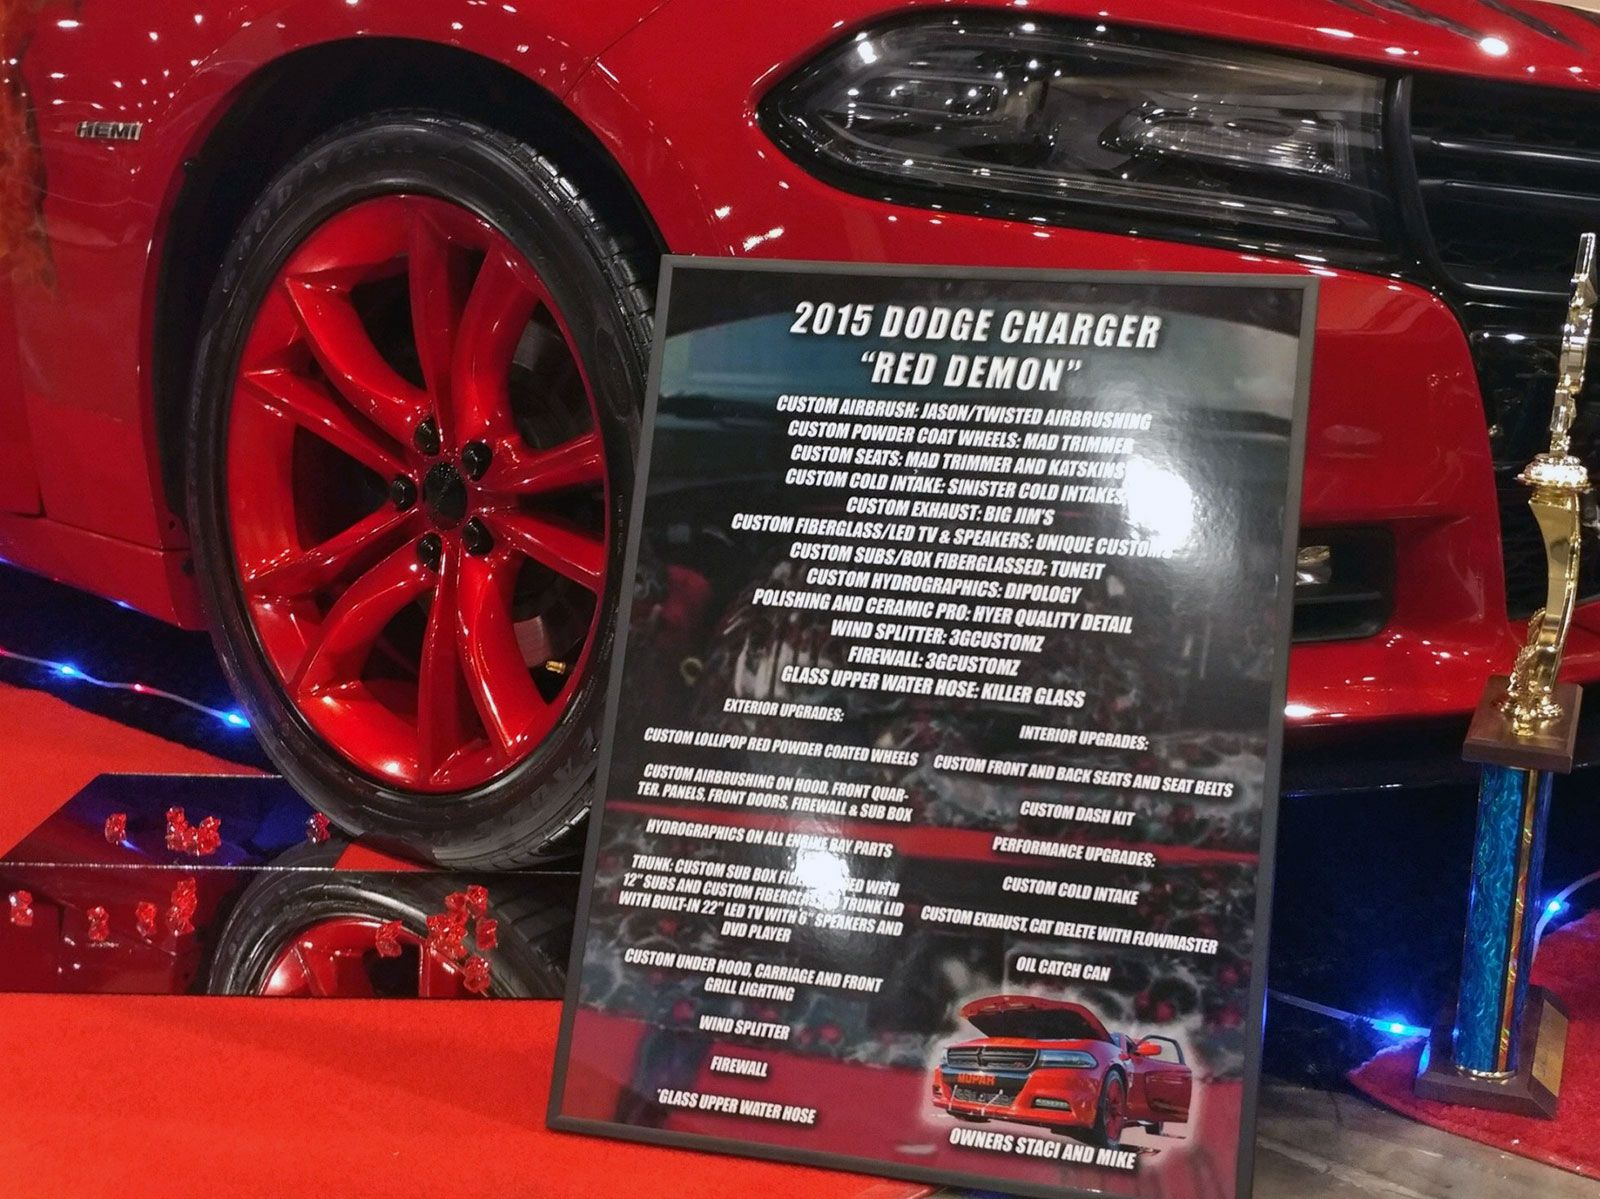 2015 Dodge Charger Car Show Board Car Show Signs Pinterest